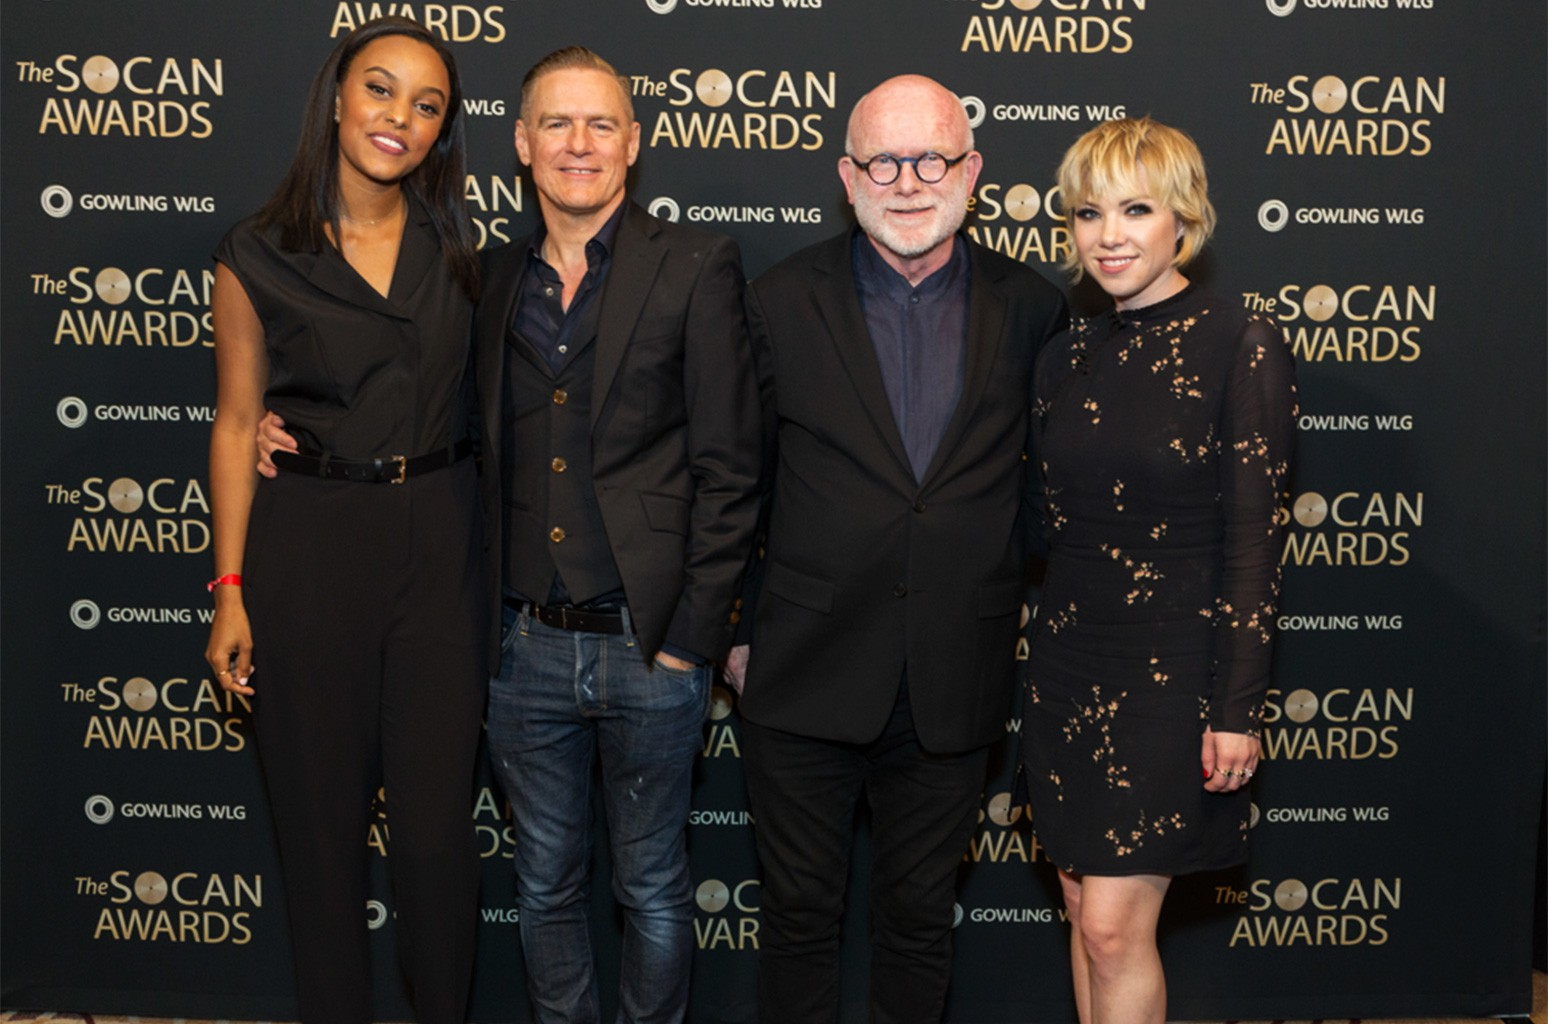 Ruth B, Bryan Adams, Jim Vallance and Carly Rae Jepsen are seen at the 28th annual SOCAN Awards, held June 19 in Toronto.